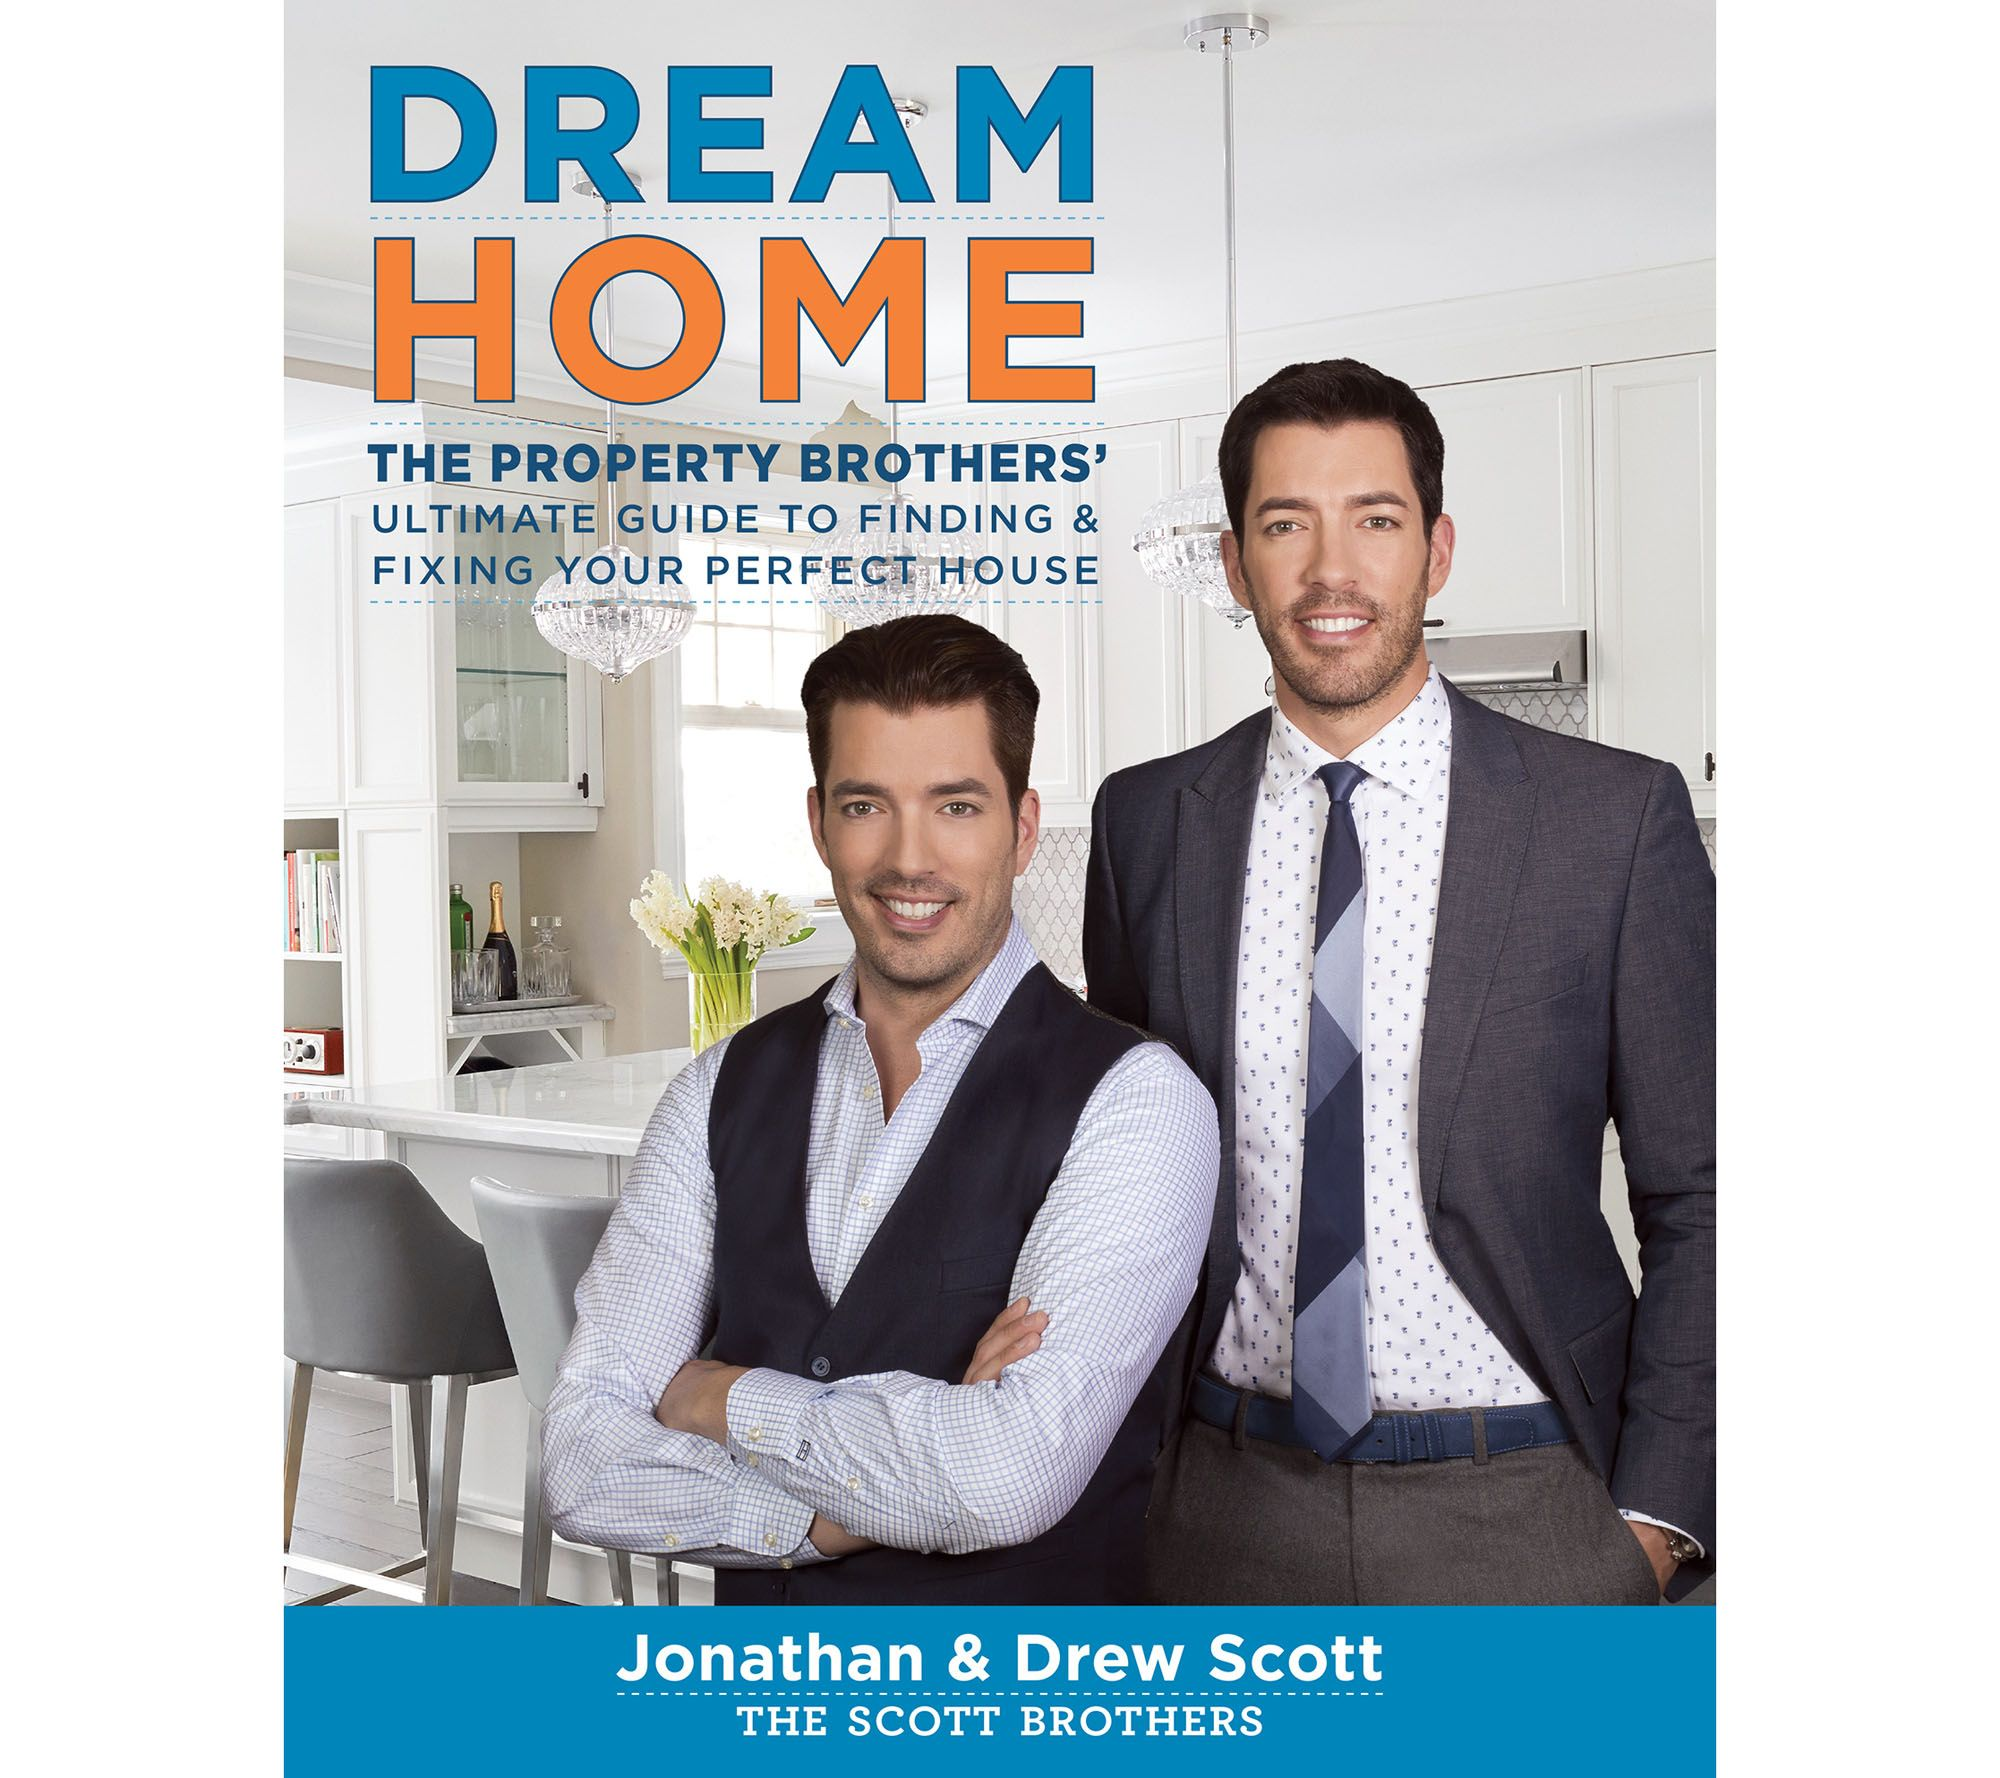 Shp 3/25 Dream Home Property Brothers' Guide To Perfect House